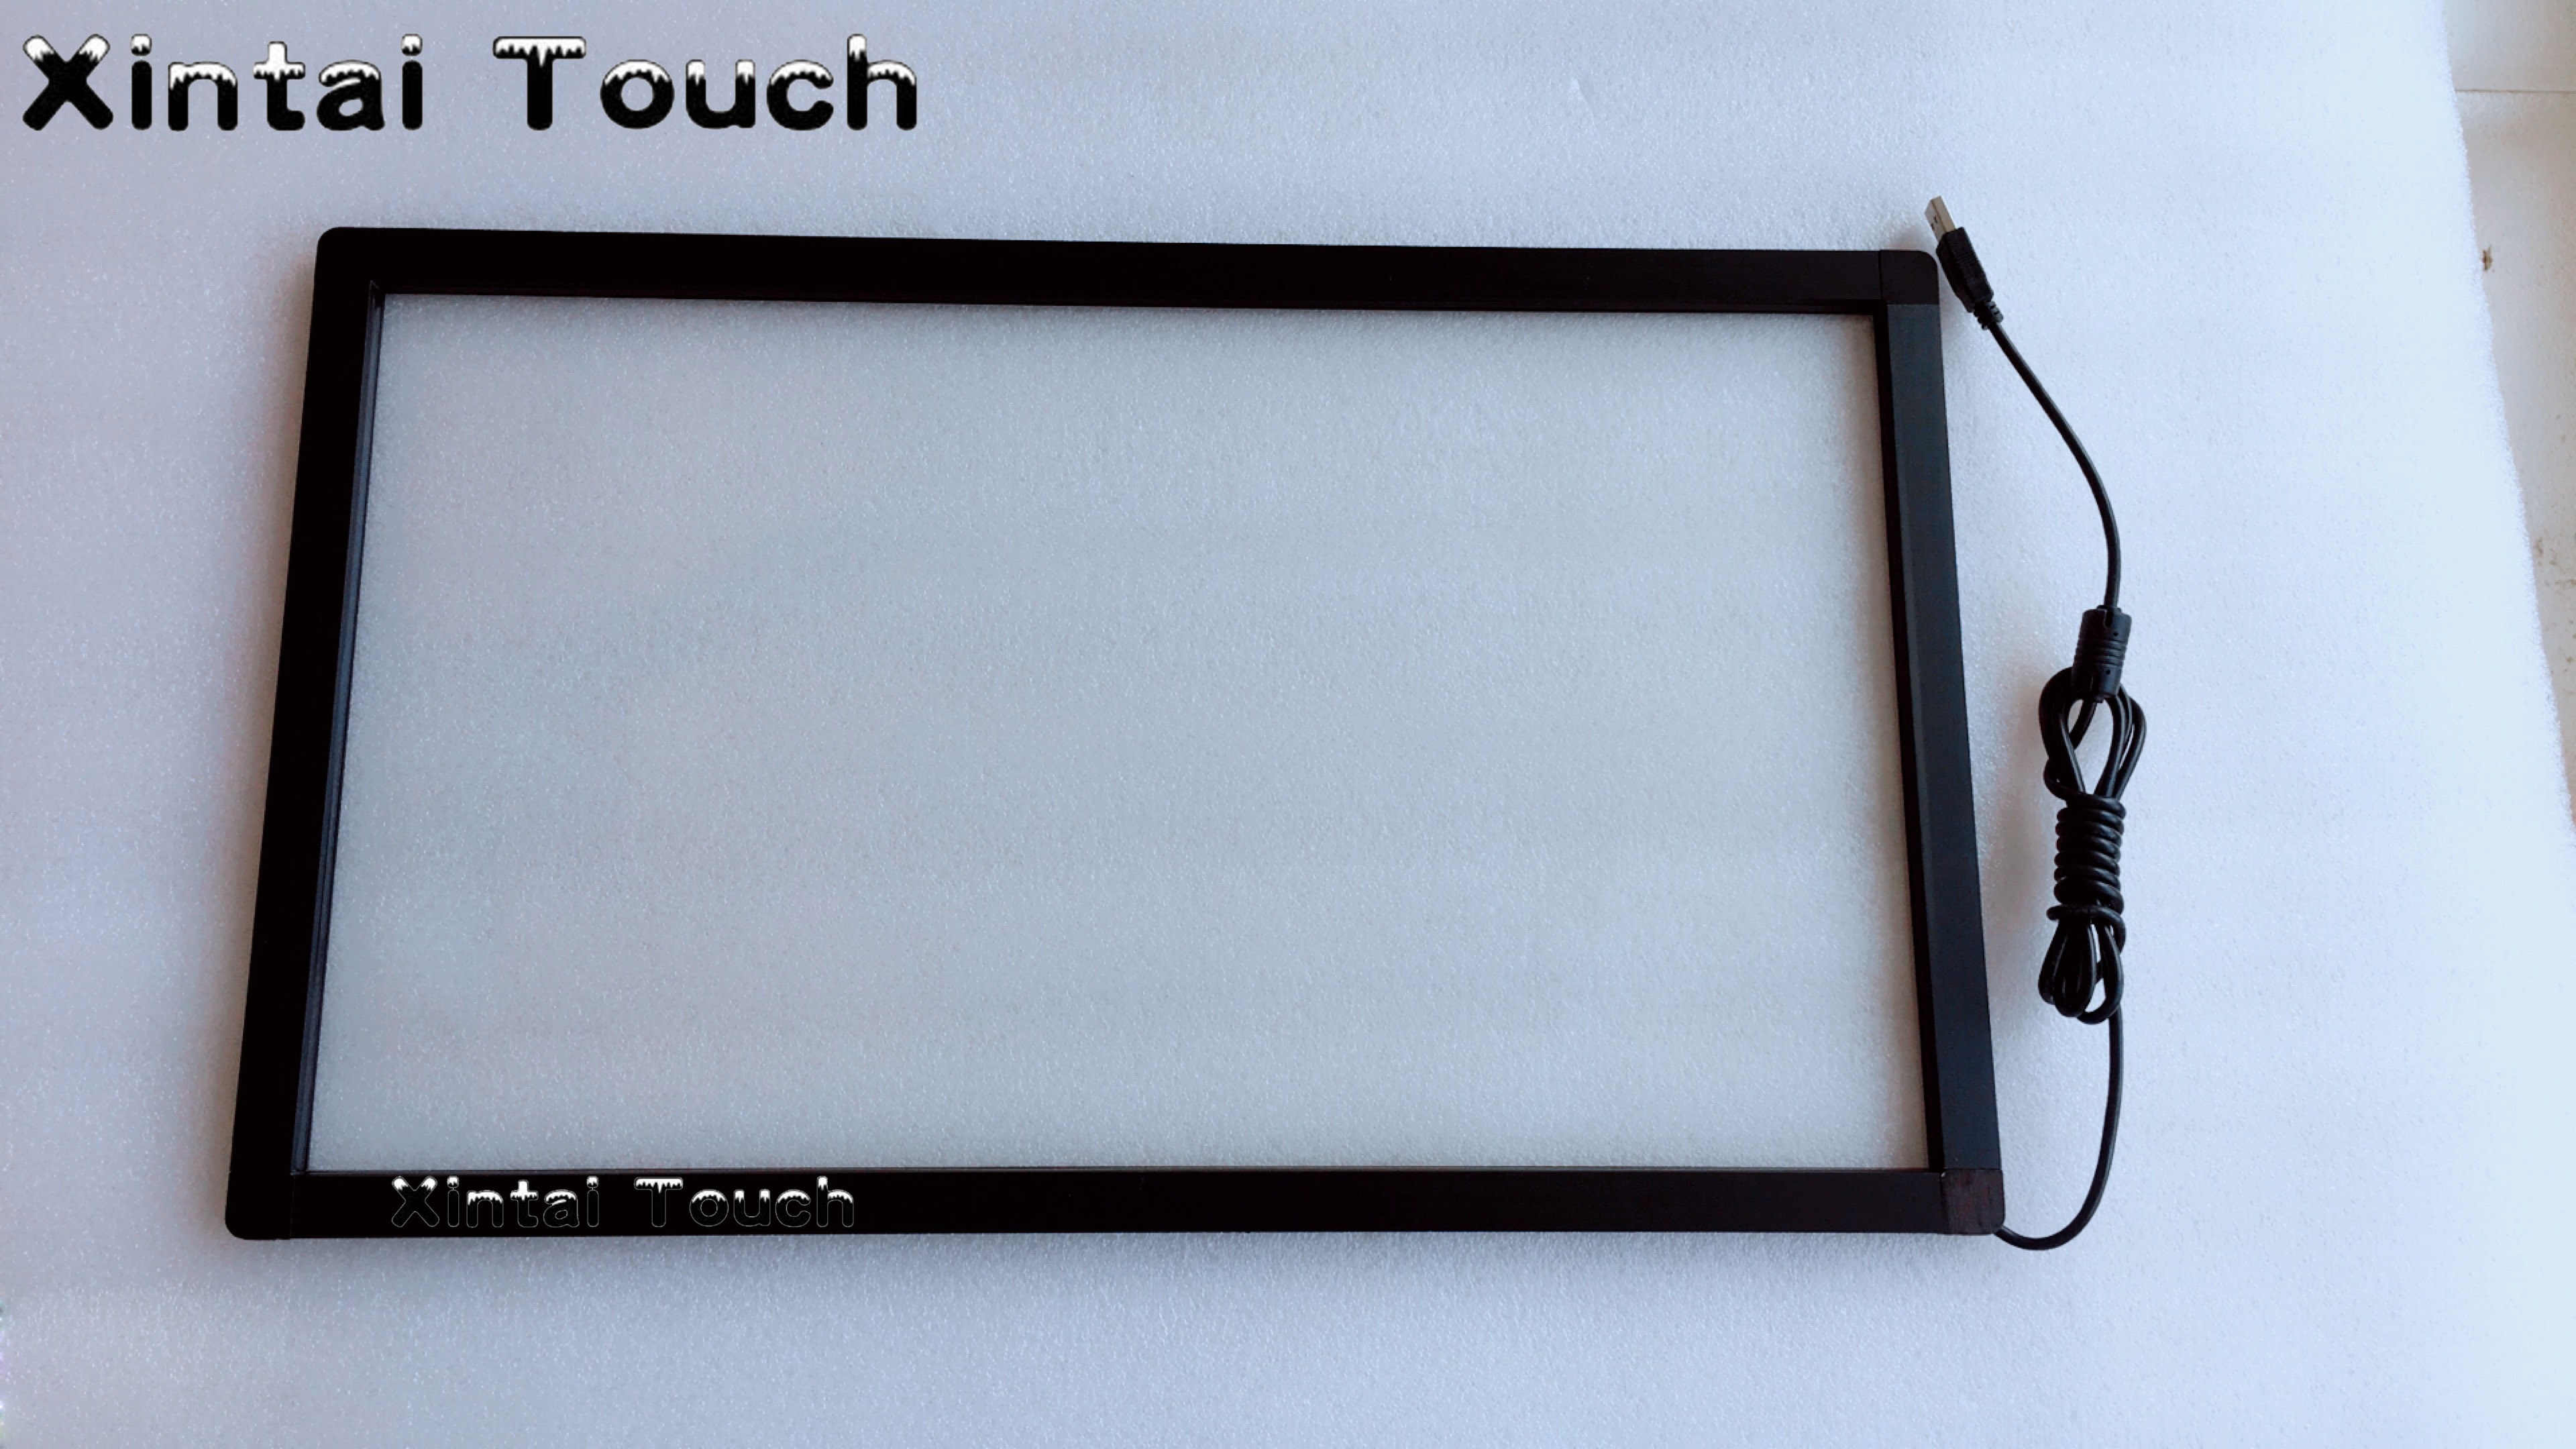 Us 91 3 17 Off 40 Inch High Definition 10 Points Touch Screen For Monitor Ir Multi Touch Screen Frame For Touch Table Kiosk Etc In Touch Screen